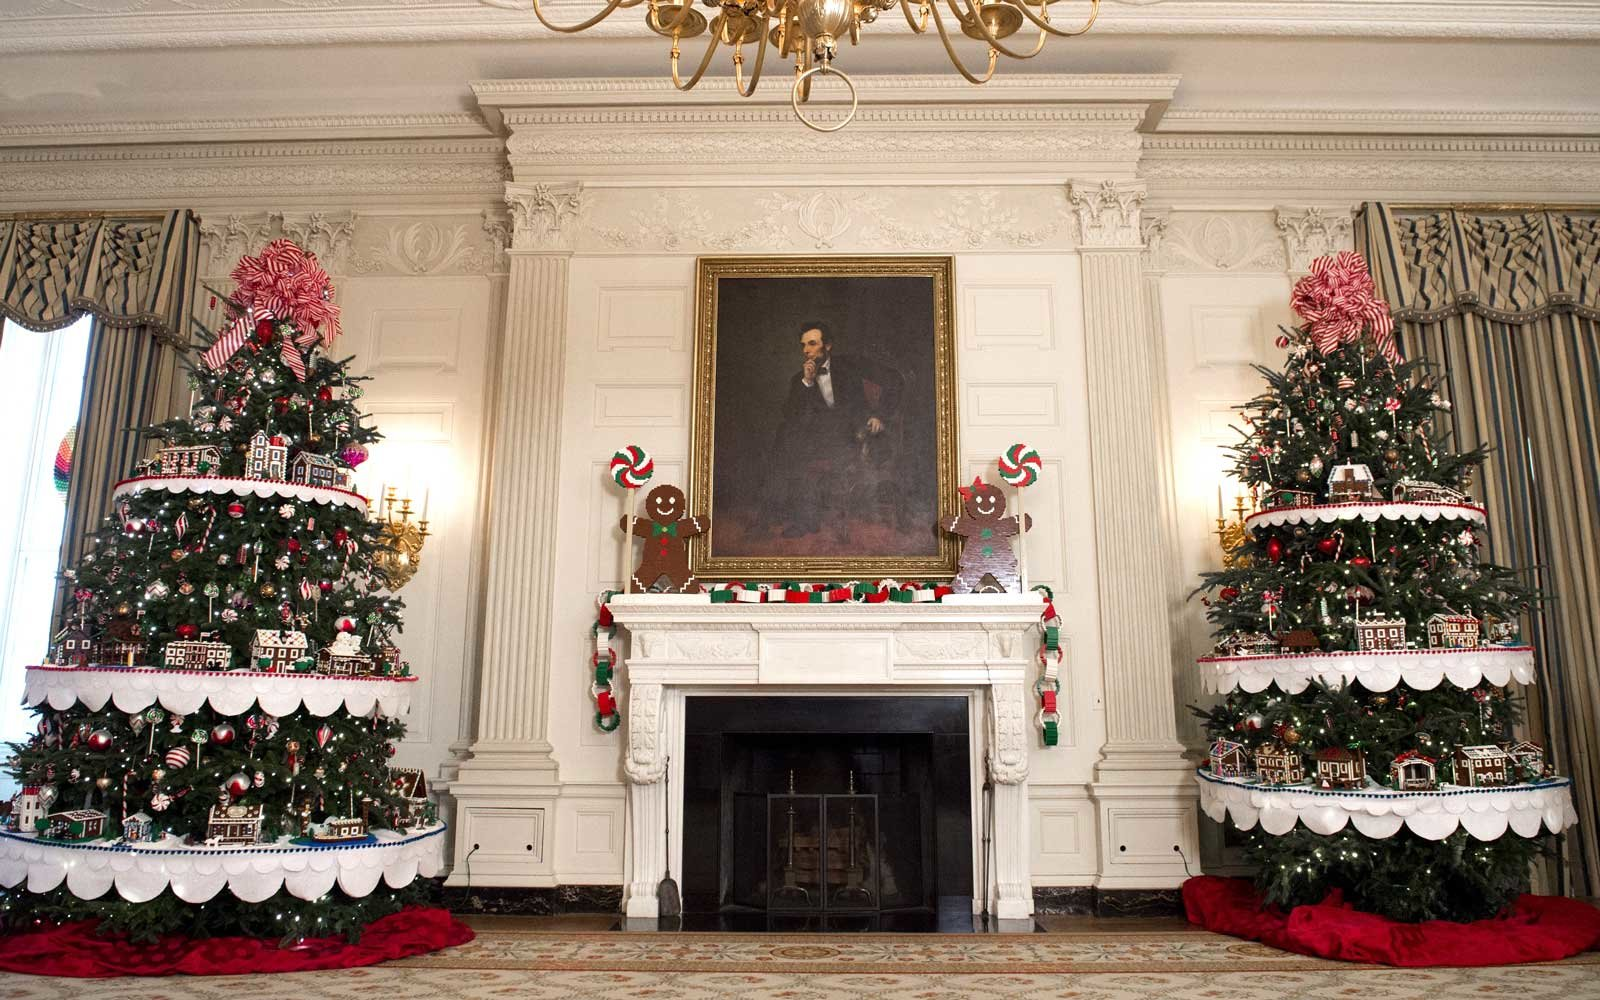 The white house holiday decorations for the obama familys last the state dining room includes gingerbread men and trees lined with 56 lego homes dzzzfo